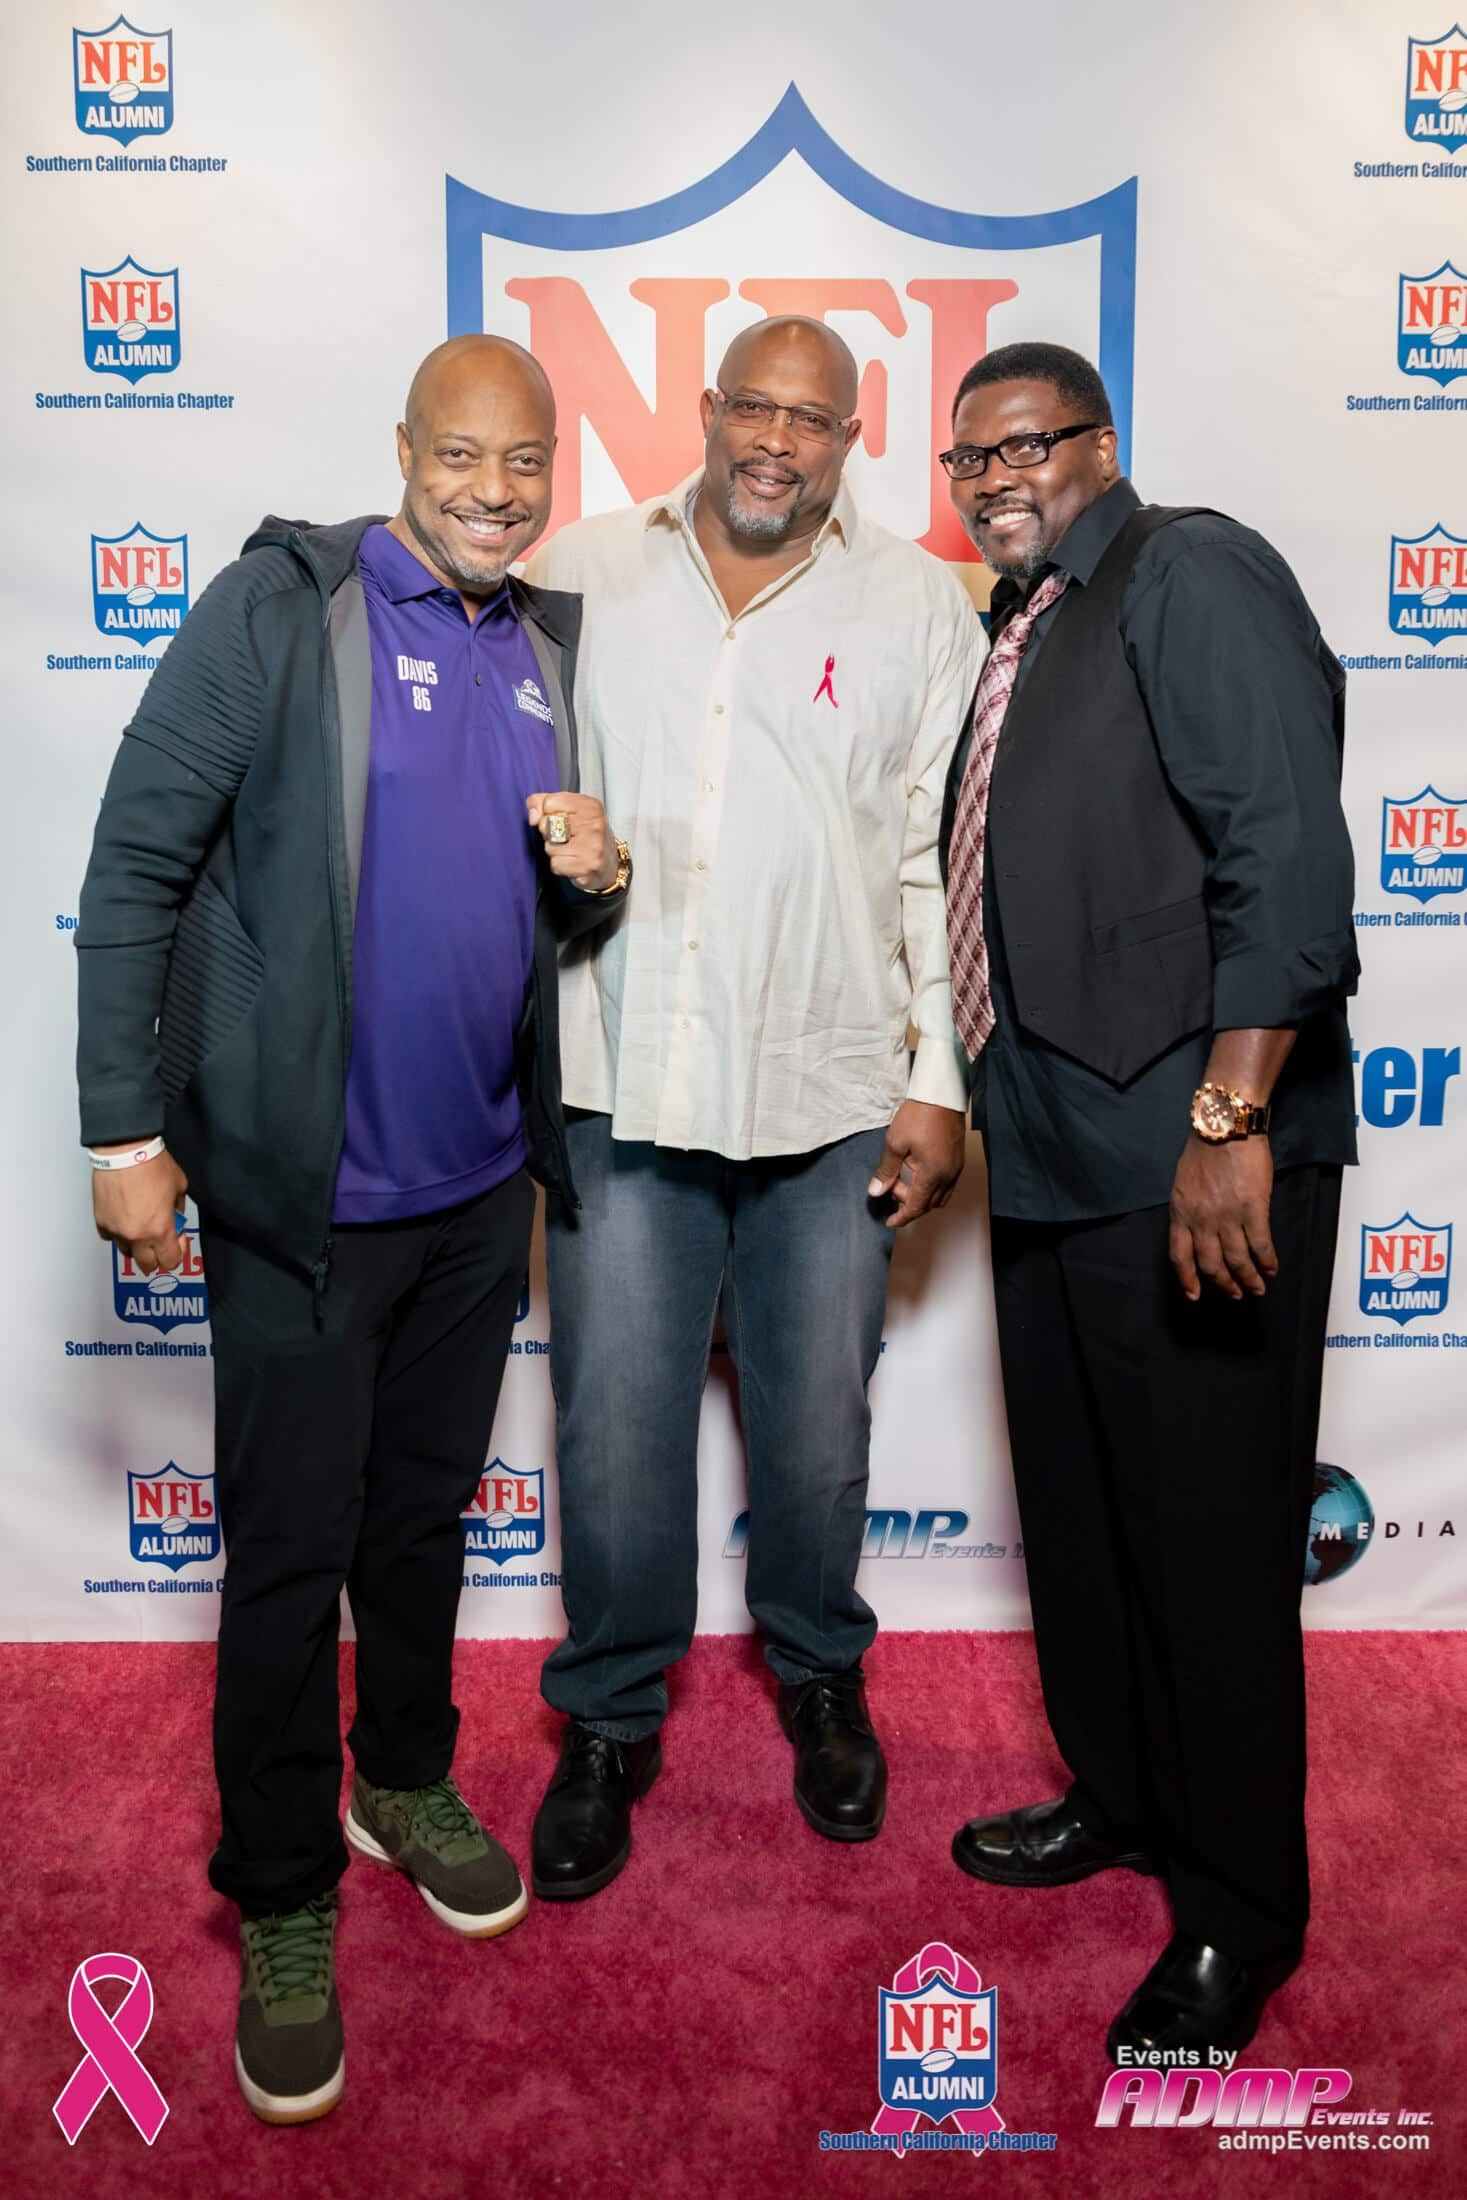 NFL Alumni SoCal Charity Event Series Breast Cancer Event 10-14-19-250